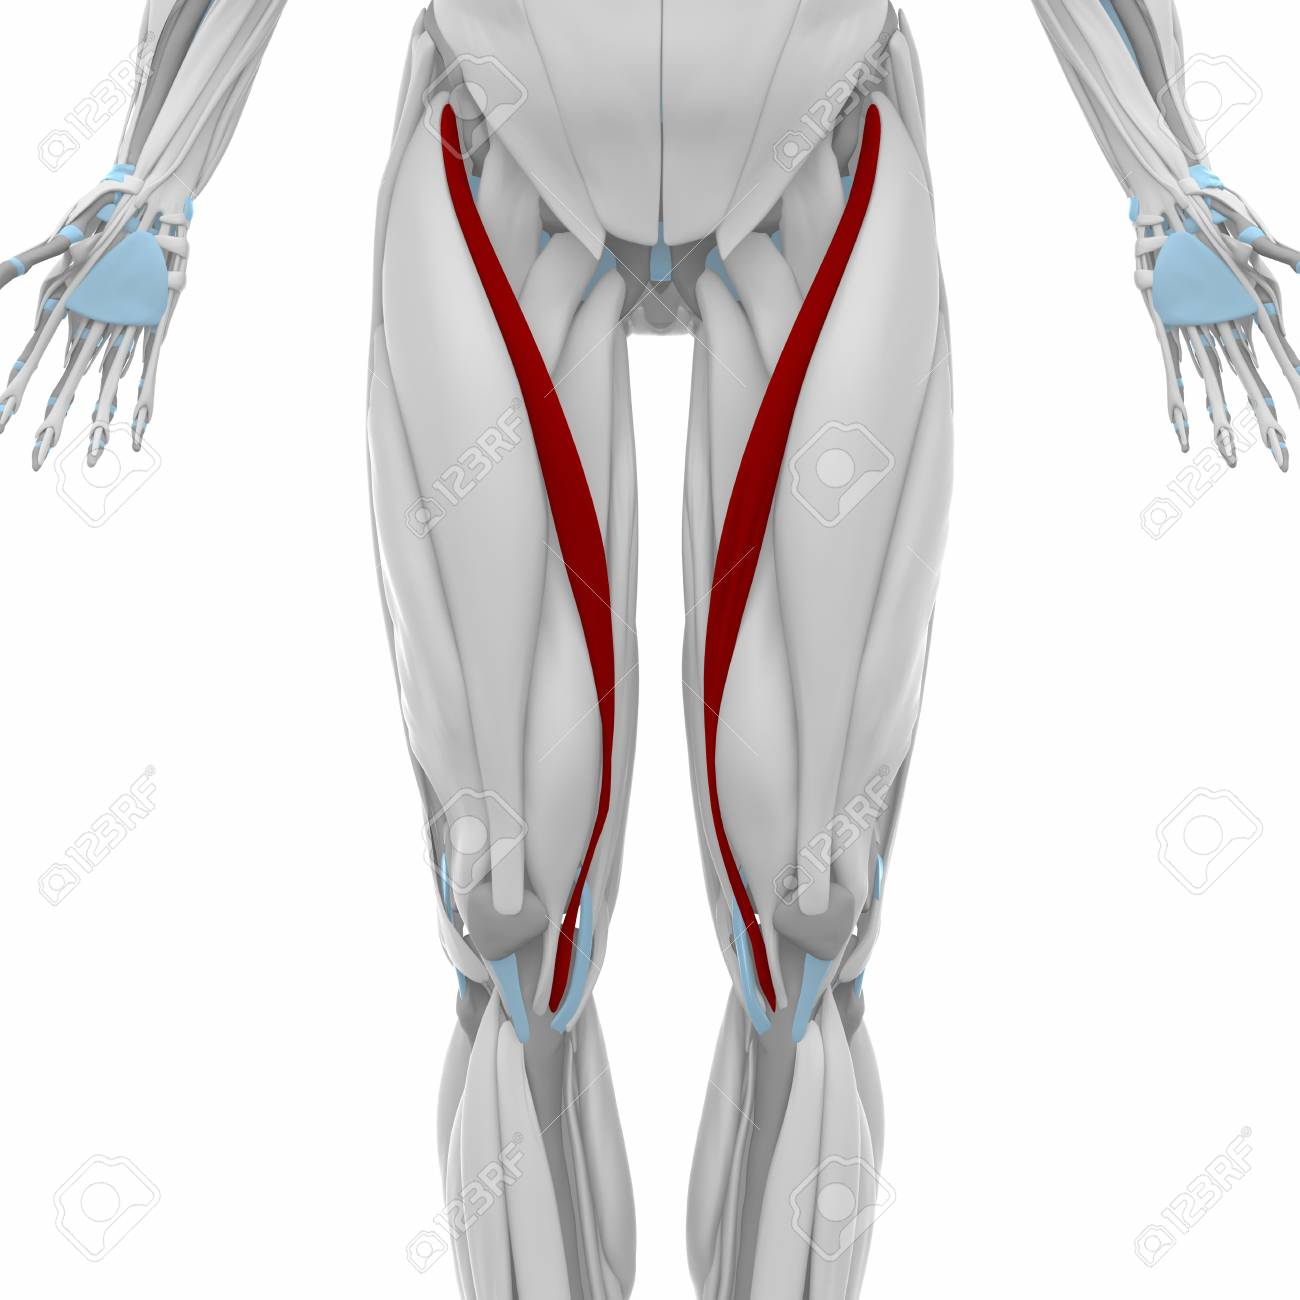 Sartorius - Muscles Anatomy Map Stock Photo, Picture And Royalty ...